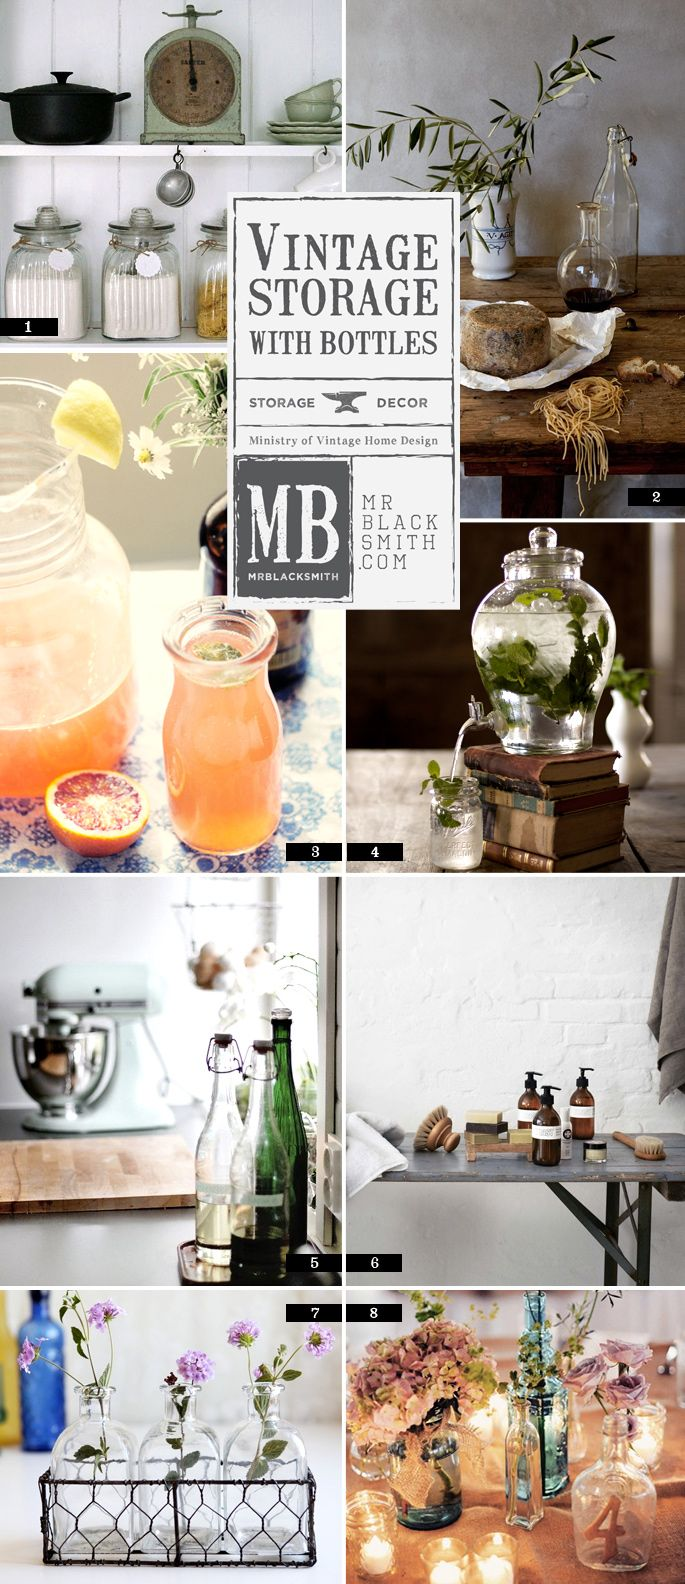 A simple guide to using vintage glass bottles and jars